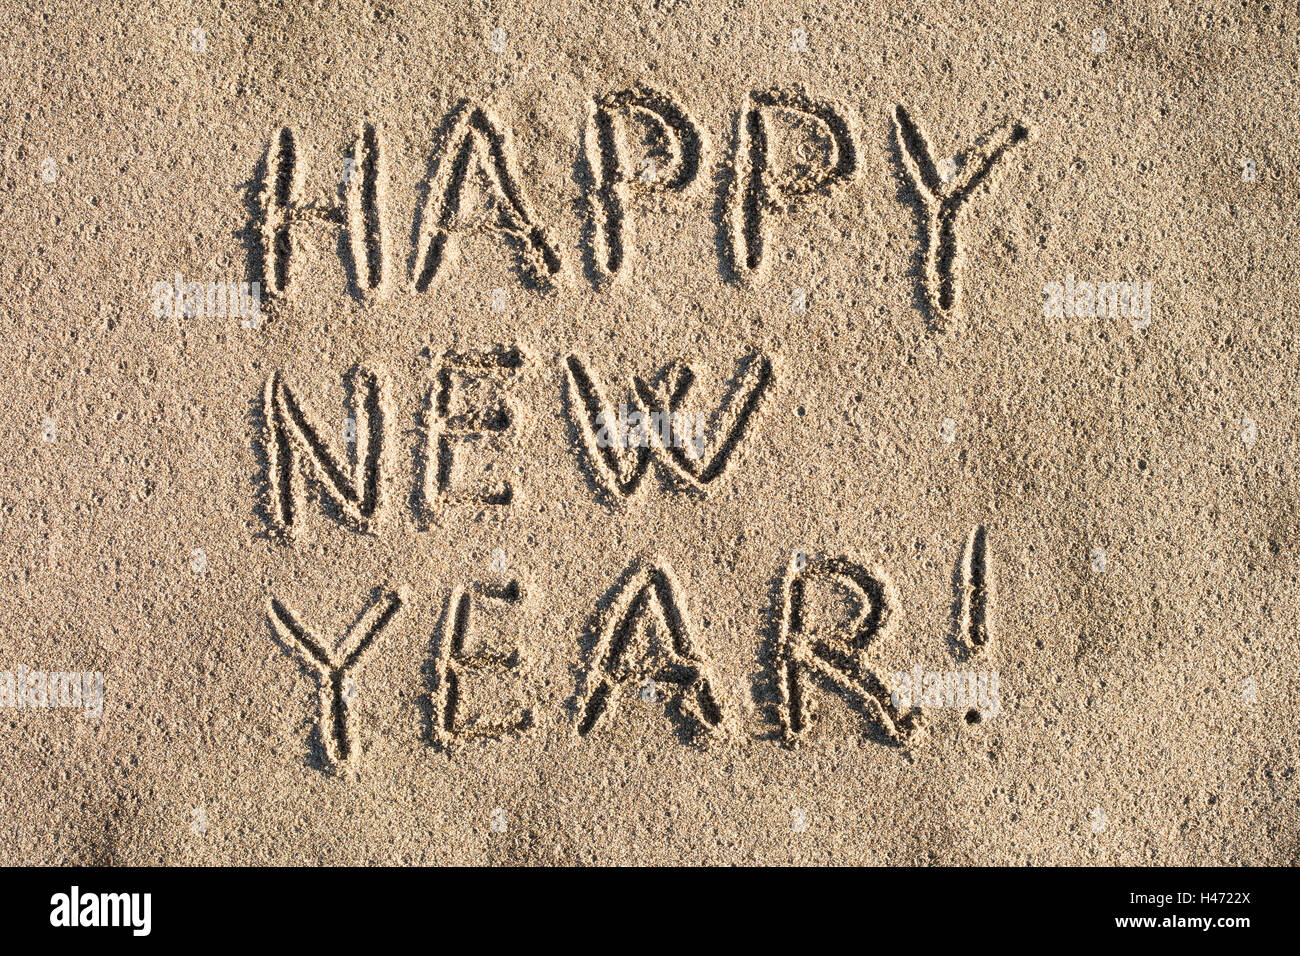 Happy new year! writing on the sand. - Stock Image